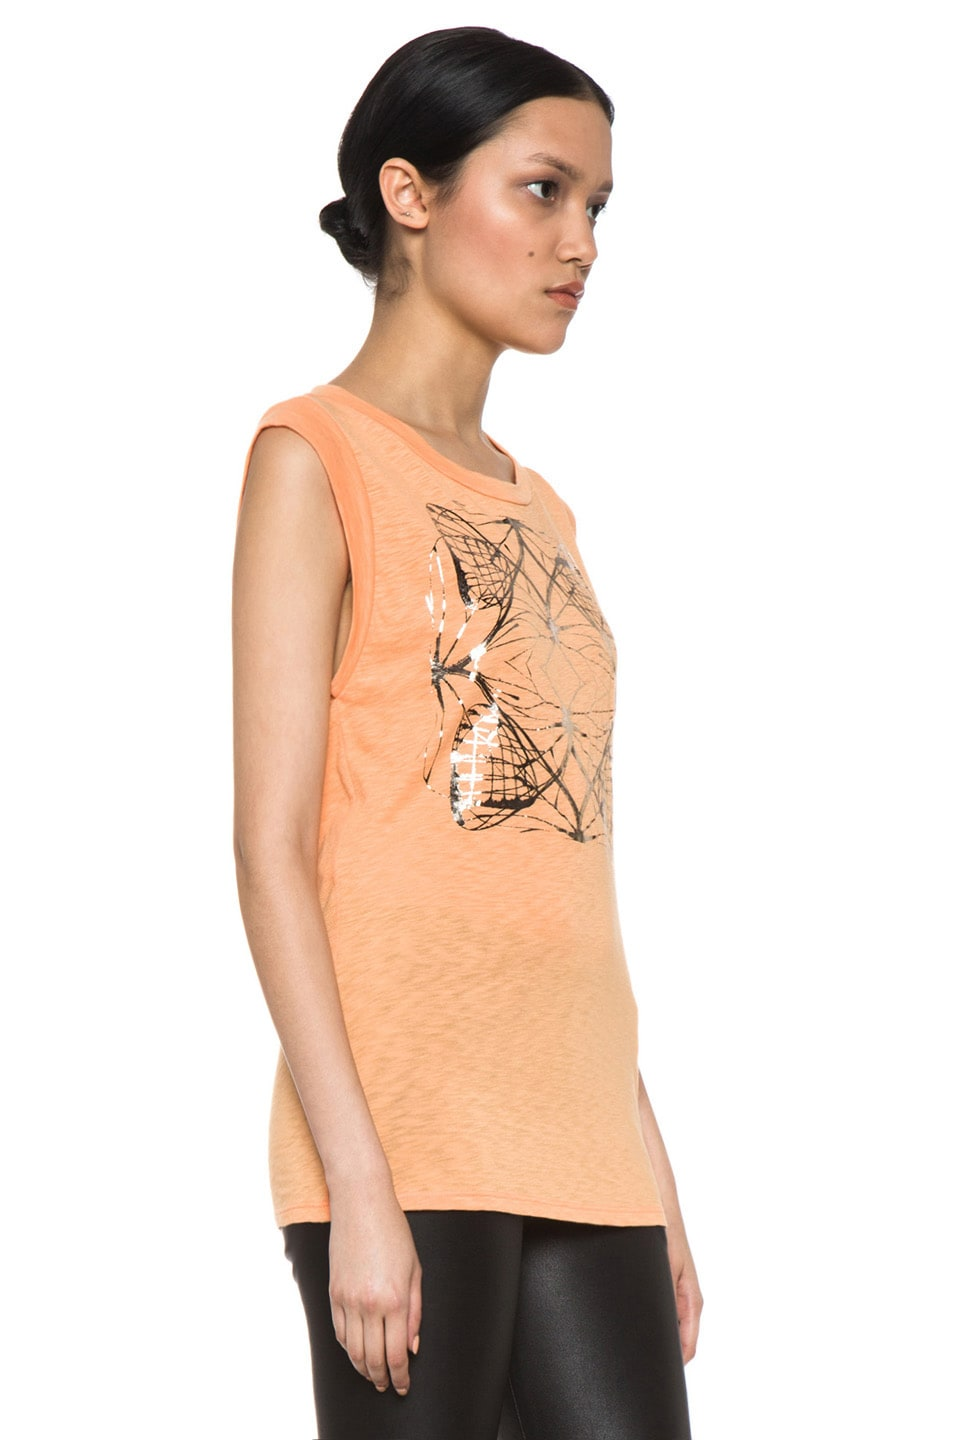 Image 3 of Kelly Wearstler Metallic Cyclone Top in Tangerine & Gunmetal Foil